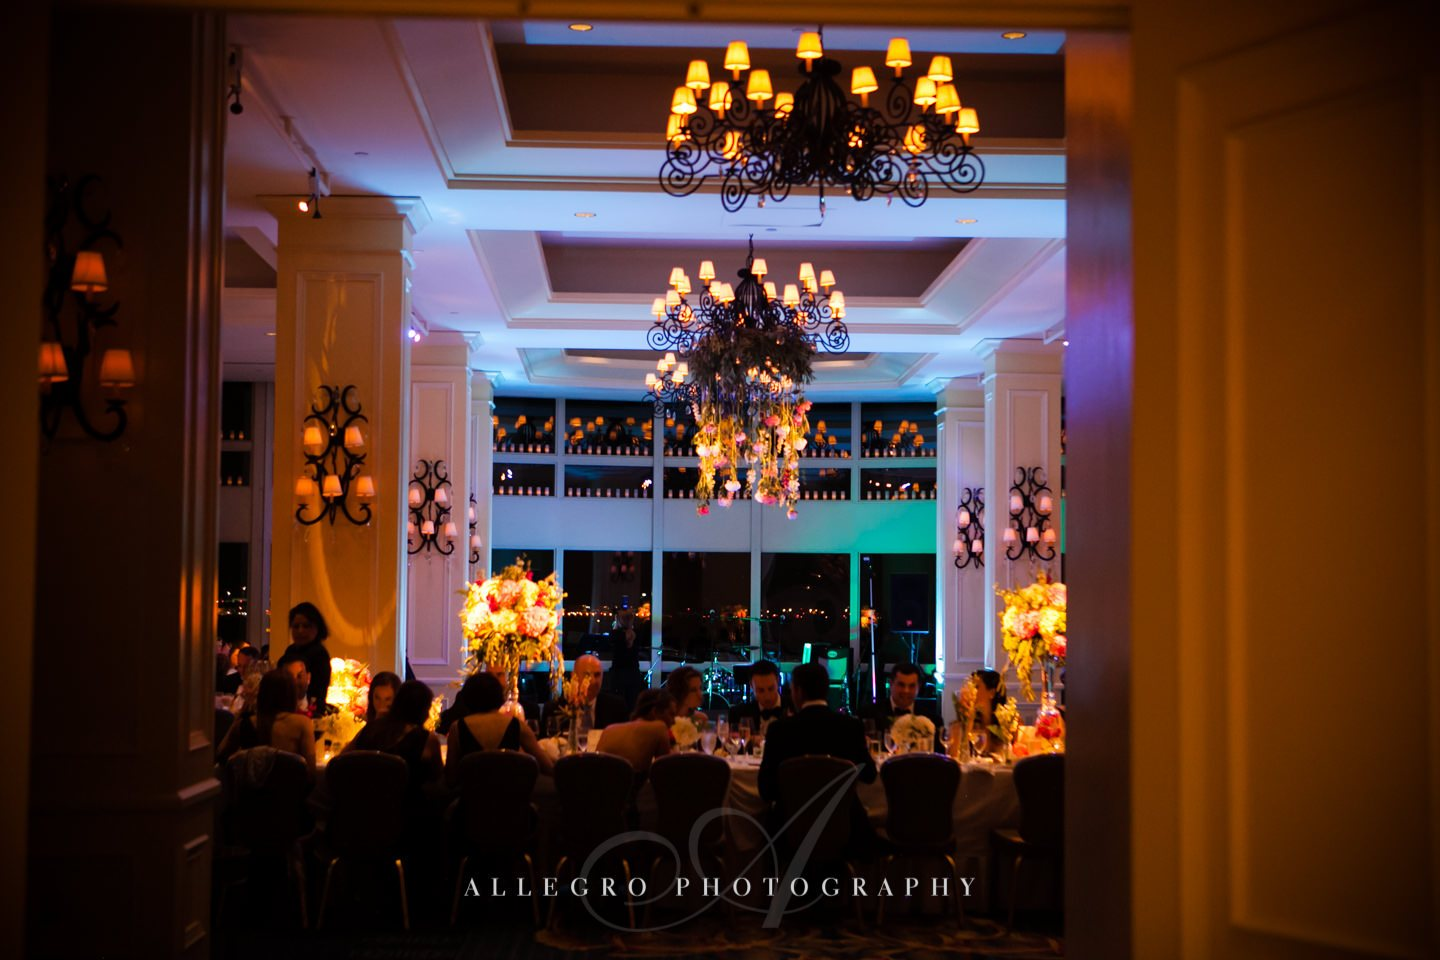 wharf room at night with uplighting- photo by allegro photography